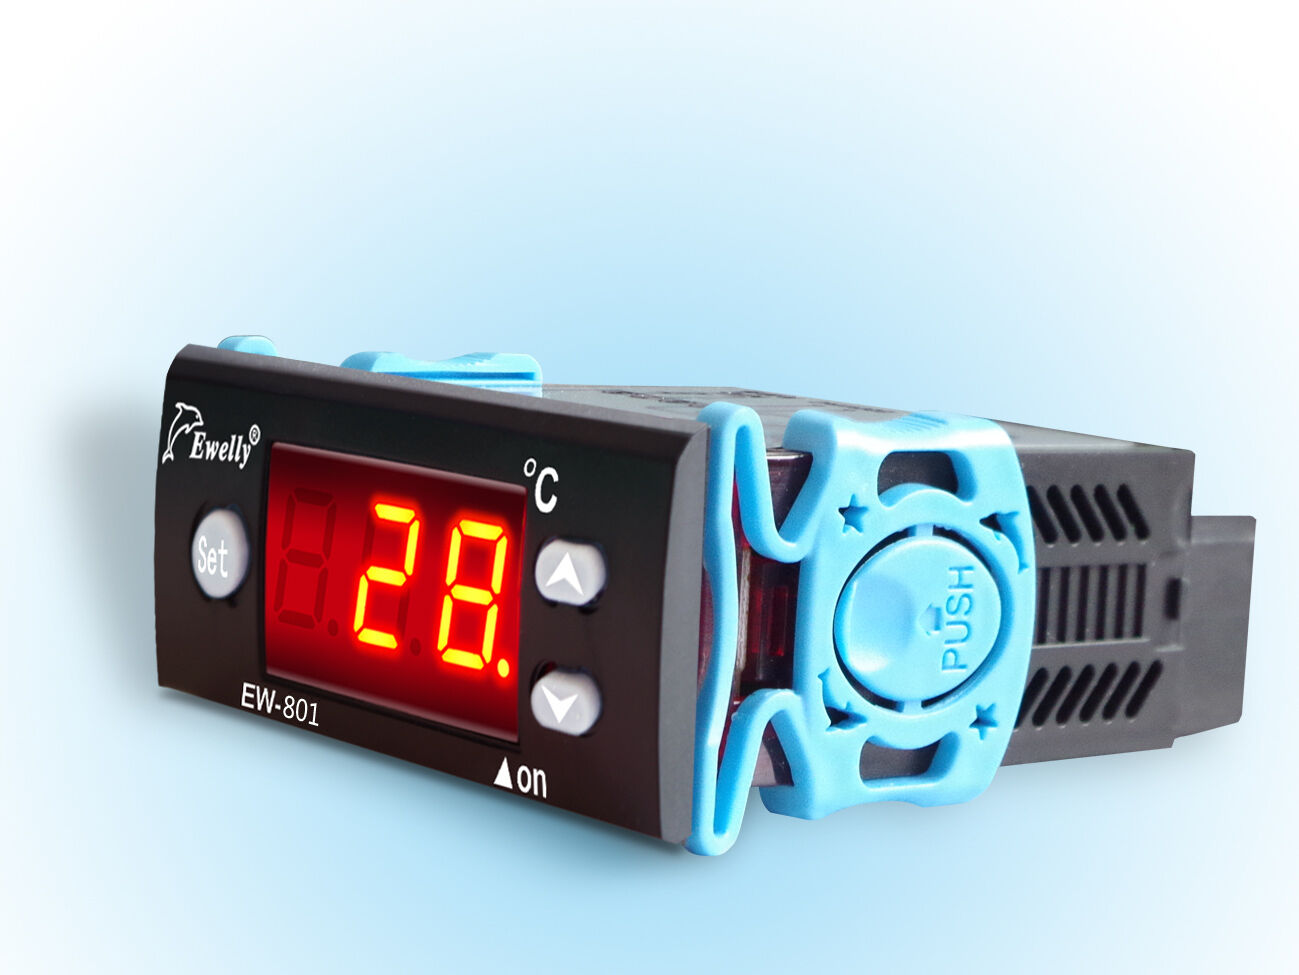 Digital Solar Water Heater Temperature Controller Thermostat Ew 801 We Also Sell The Ranco Etc Prewired With Power Cord And Cookies Adchoice Norton Secured Powered By Verisign